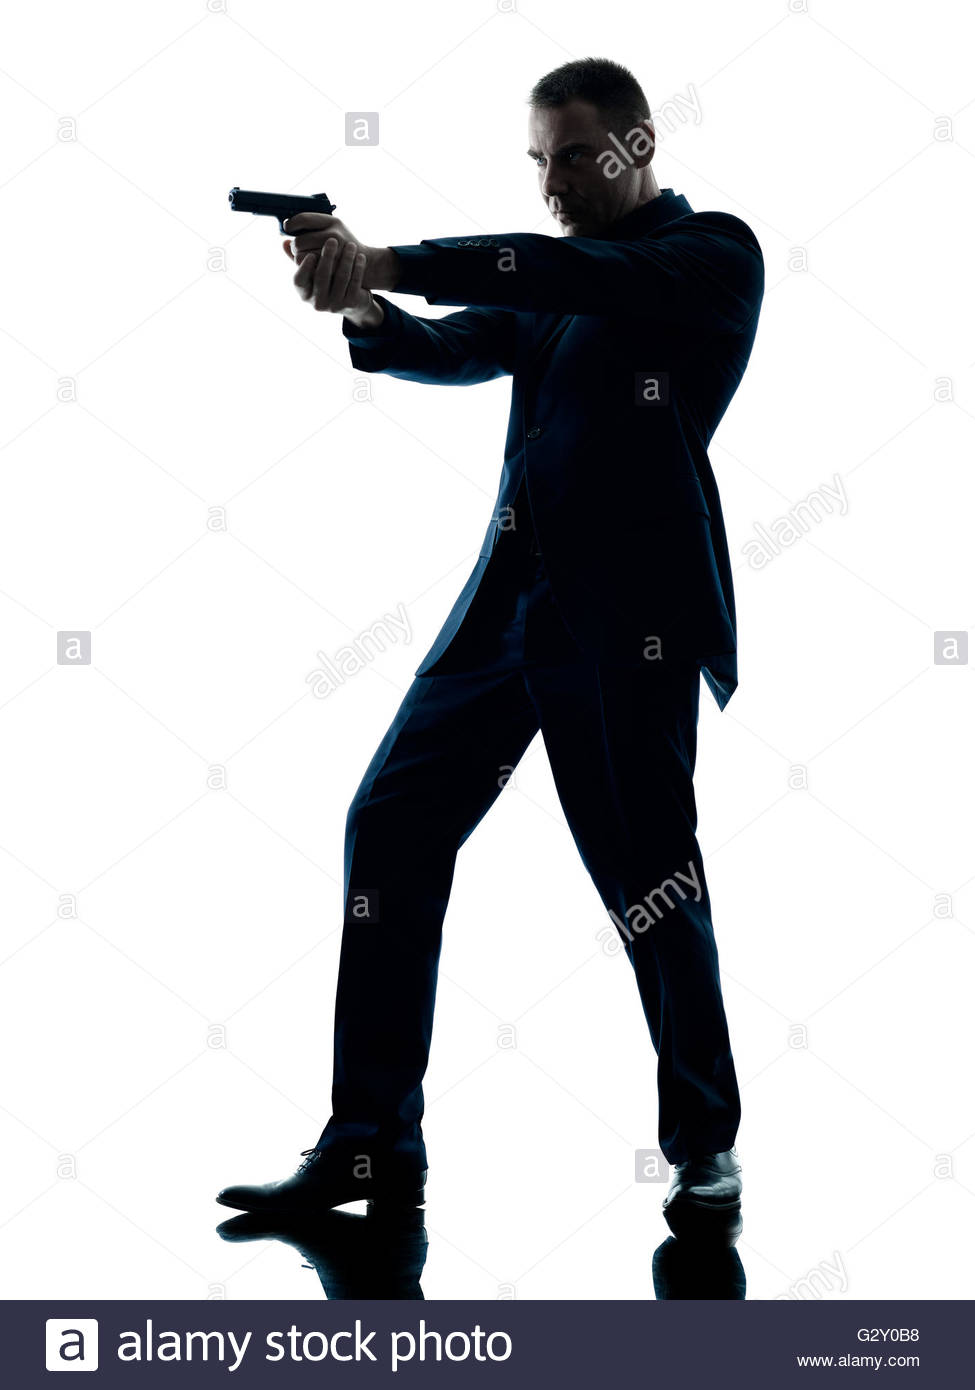 975x1390 One Caucasian Man With A Handgun Silhouette Isolated On White